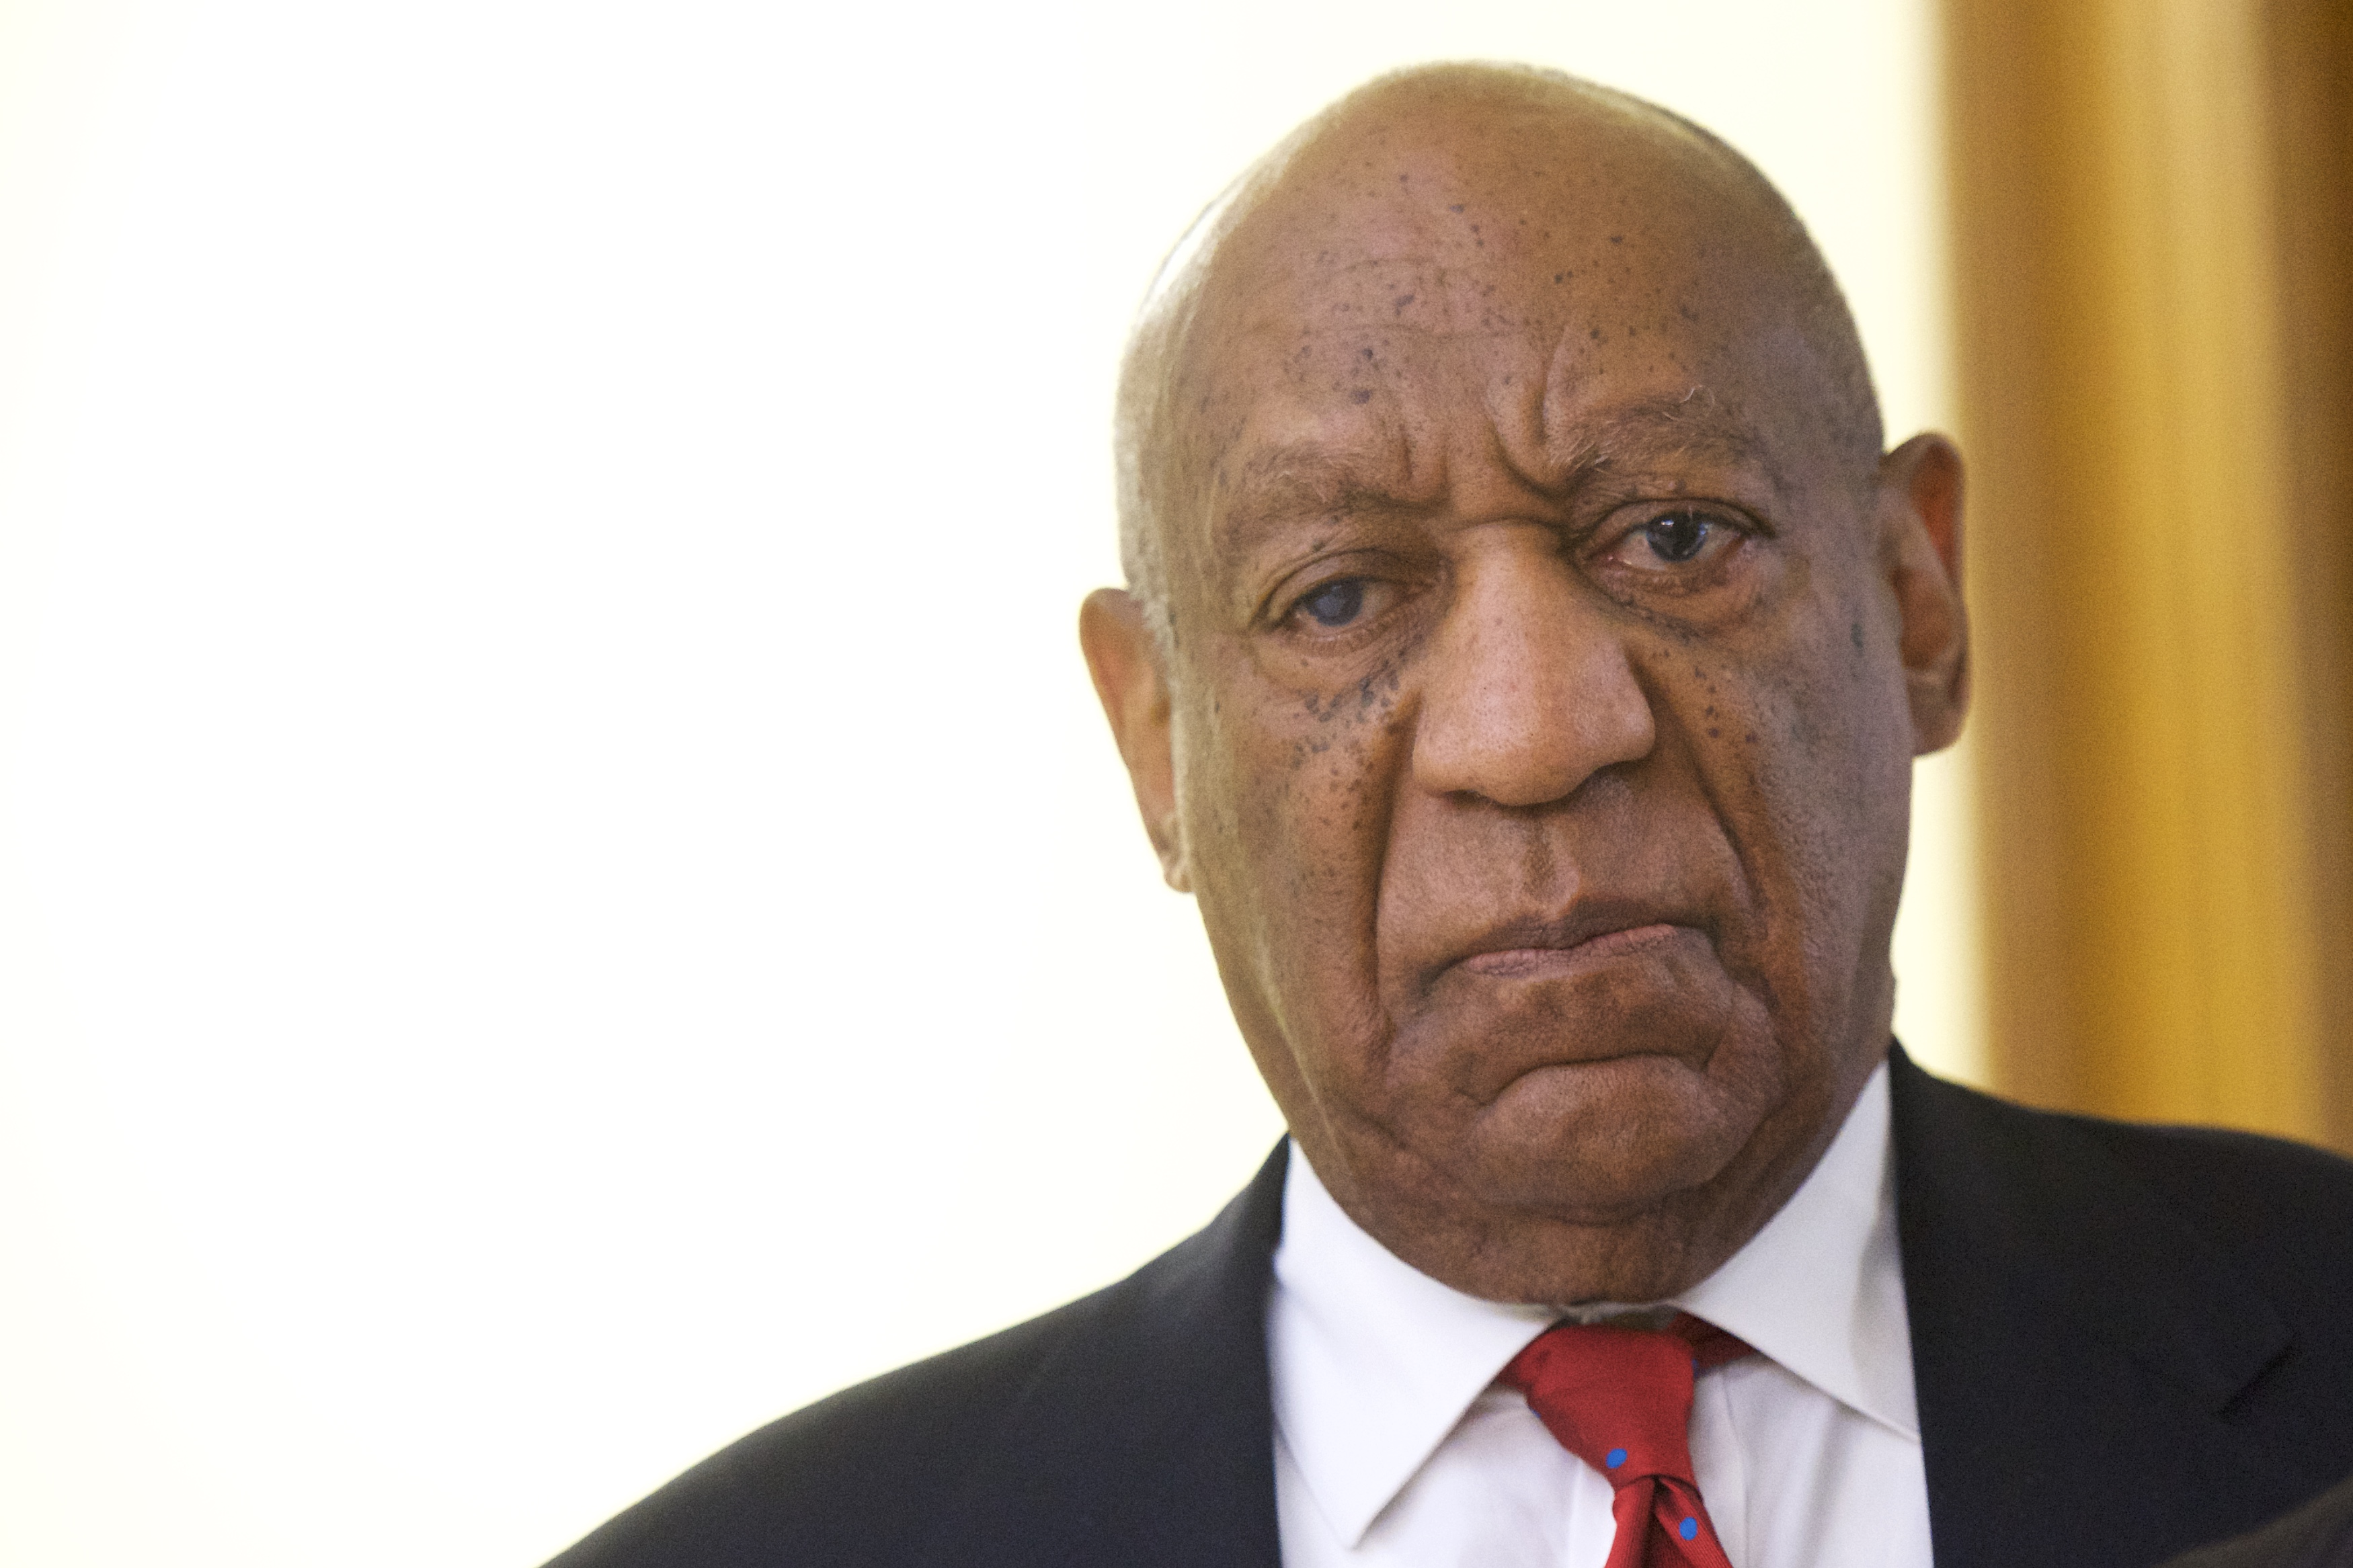 Jury Deliberations Continue In Retrial Of Bill Cosby